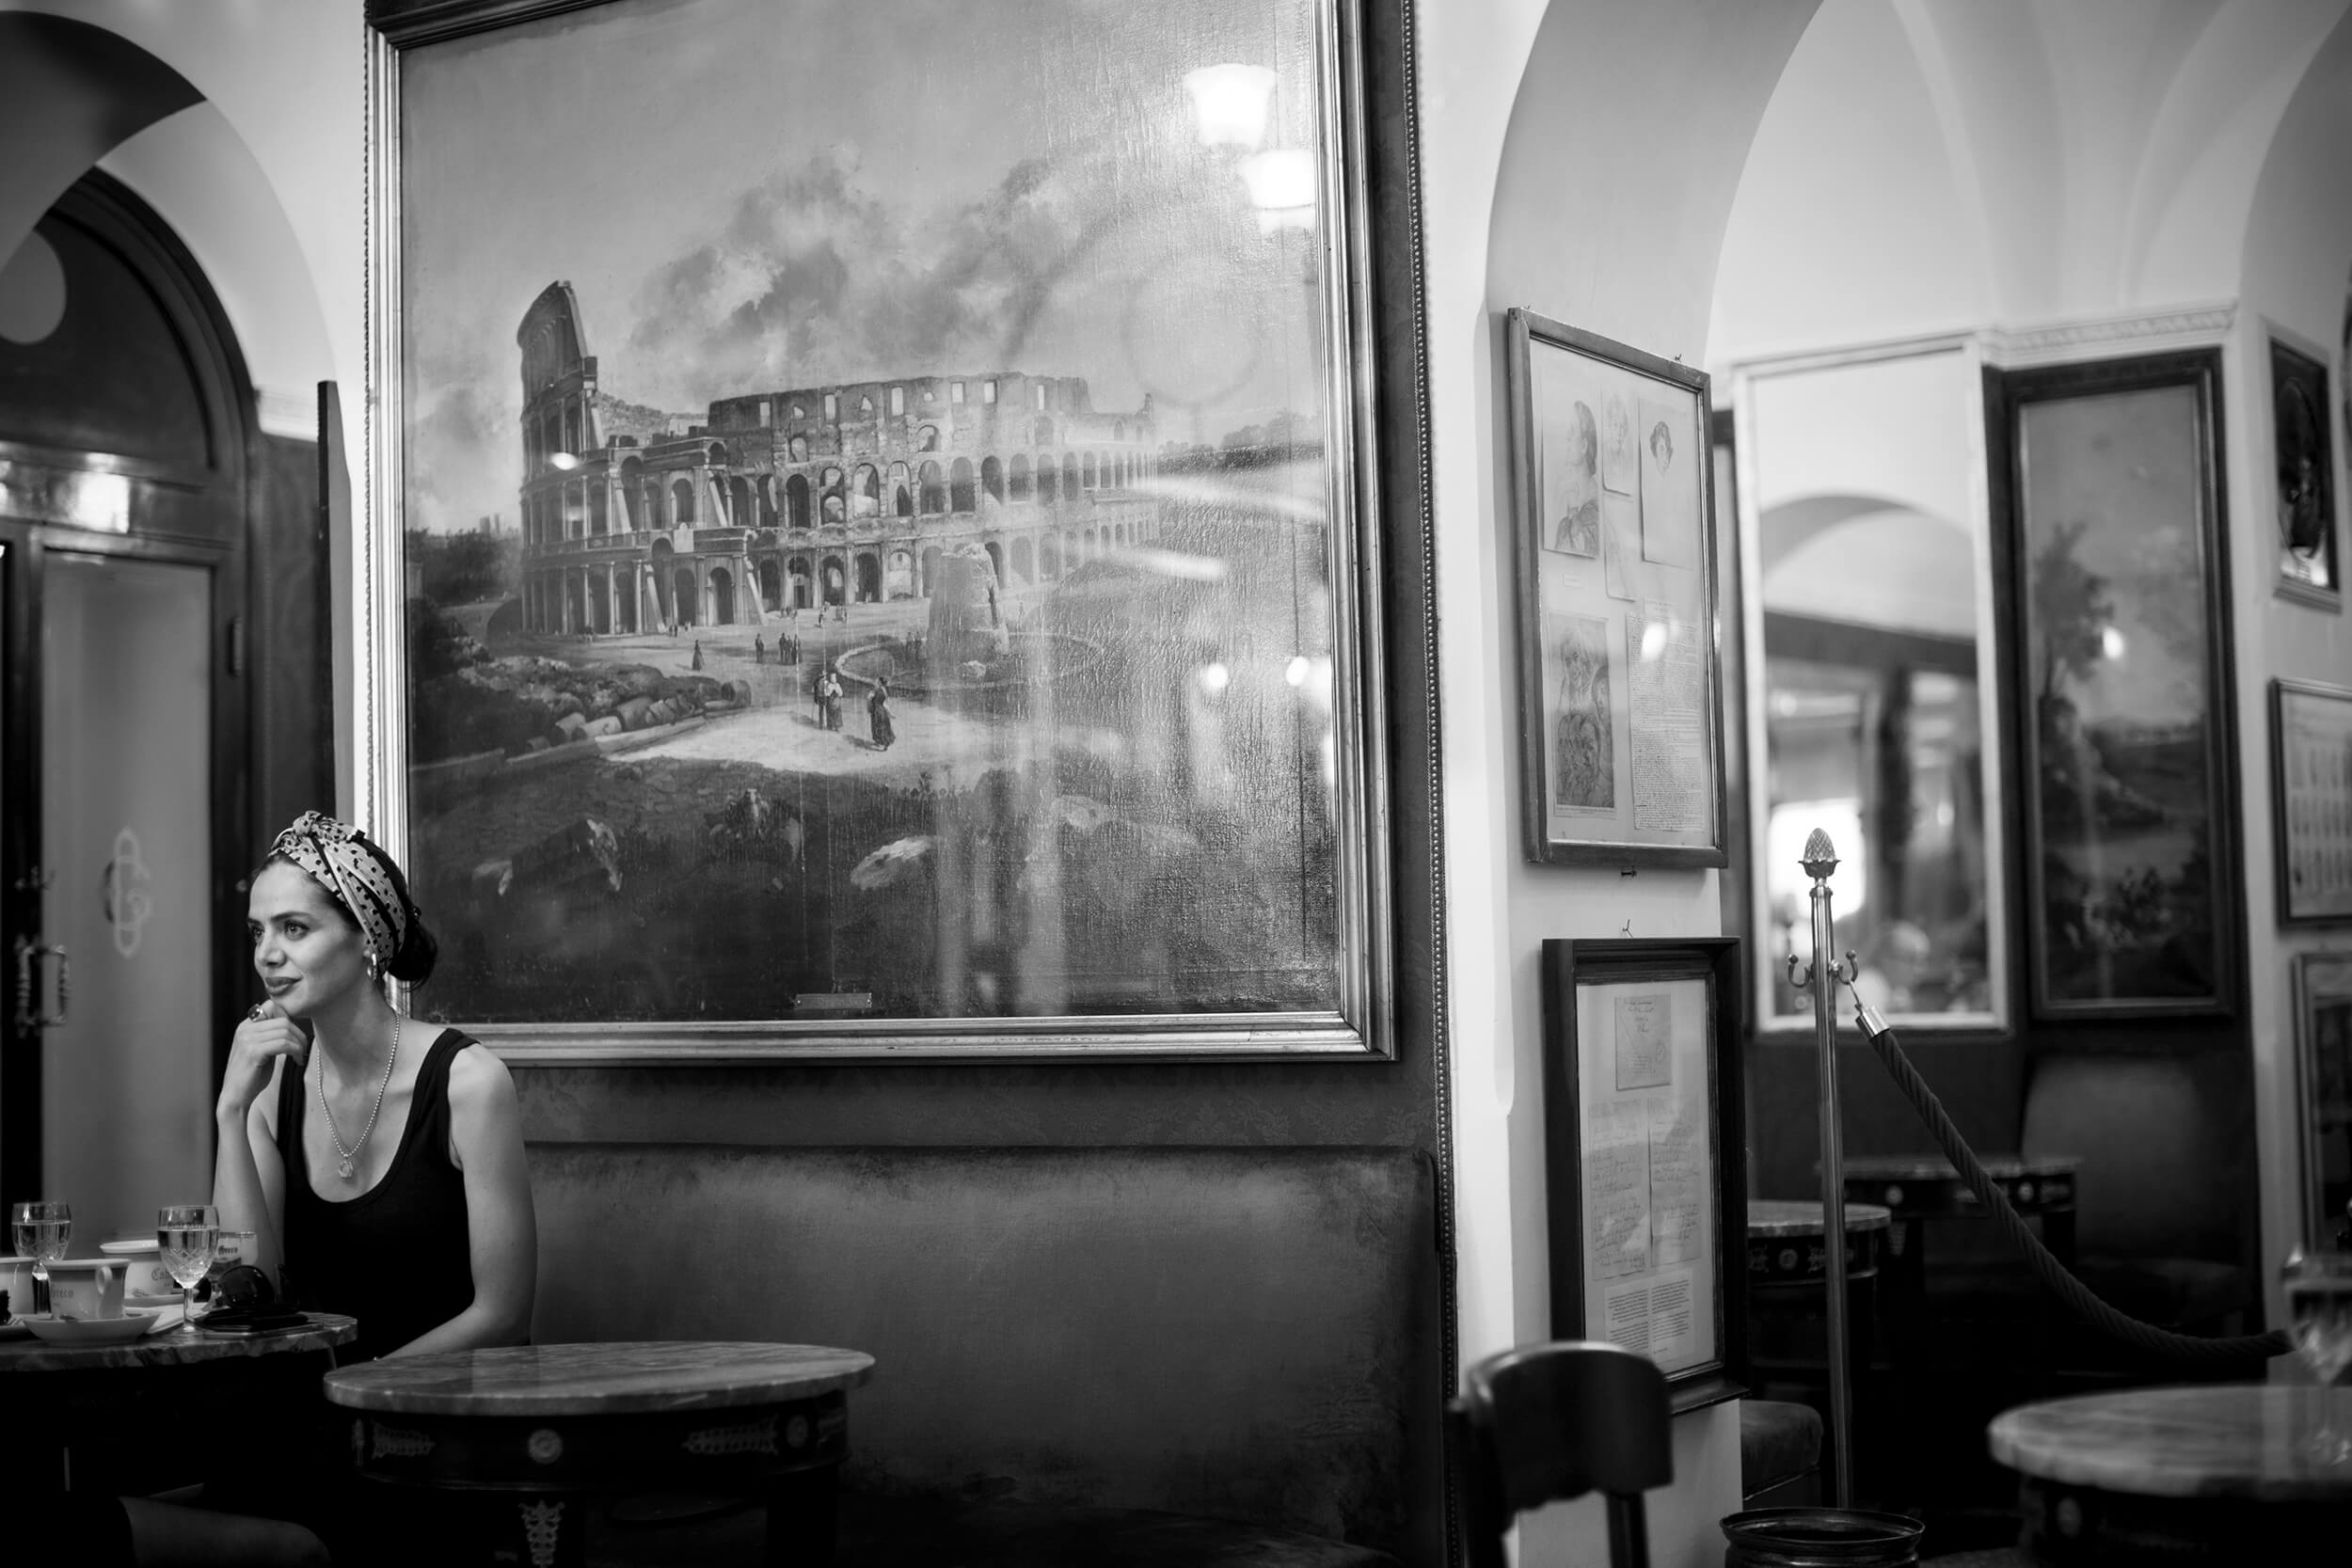 Caffè Greco, Italy, opened 250 years ago and is the oldest coffee caffet in Rome.